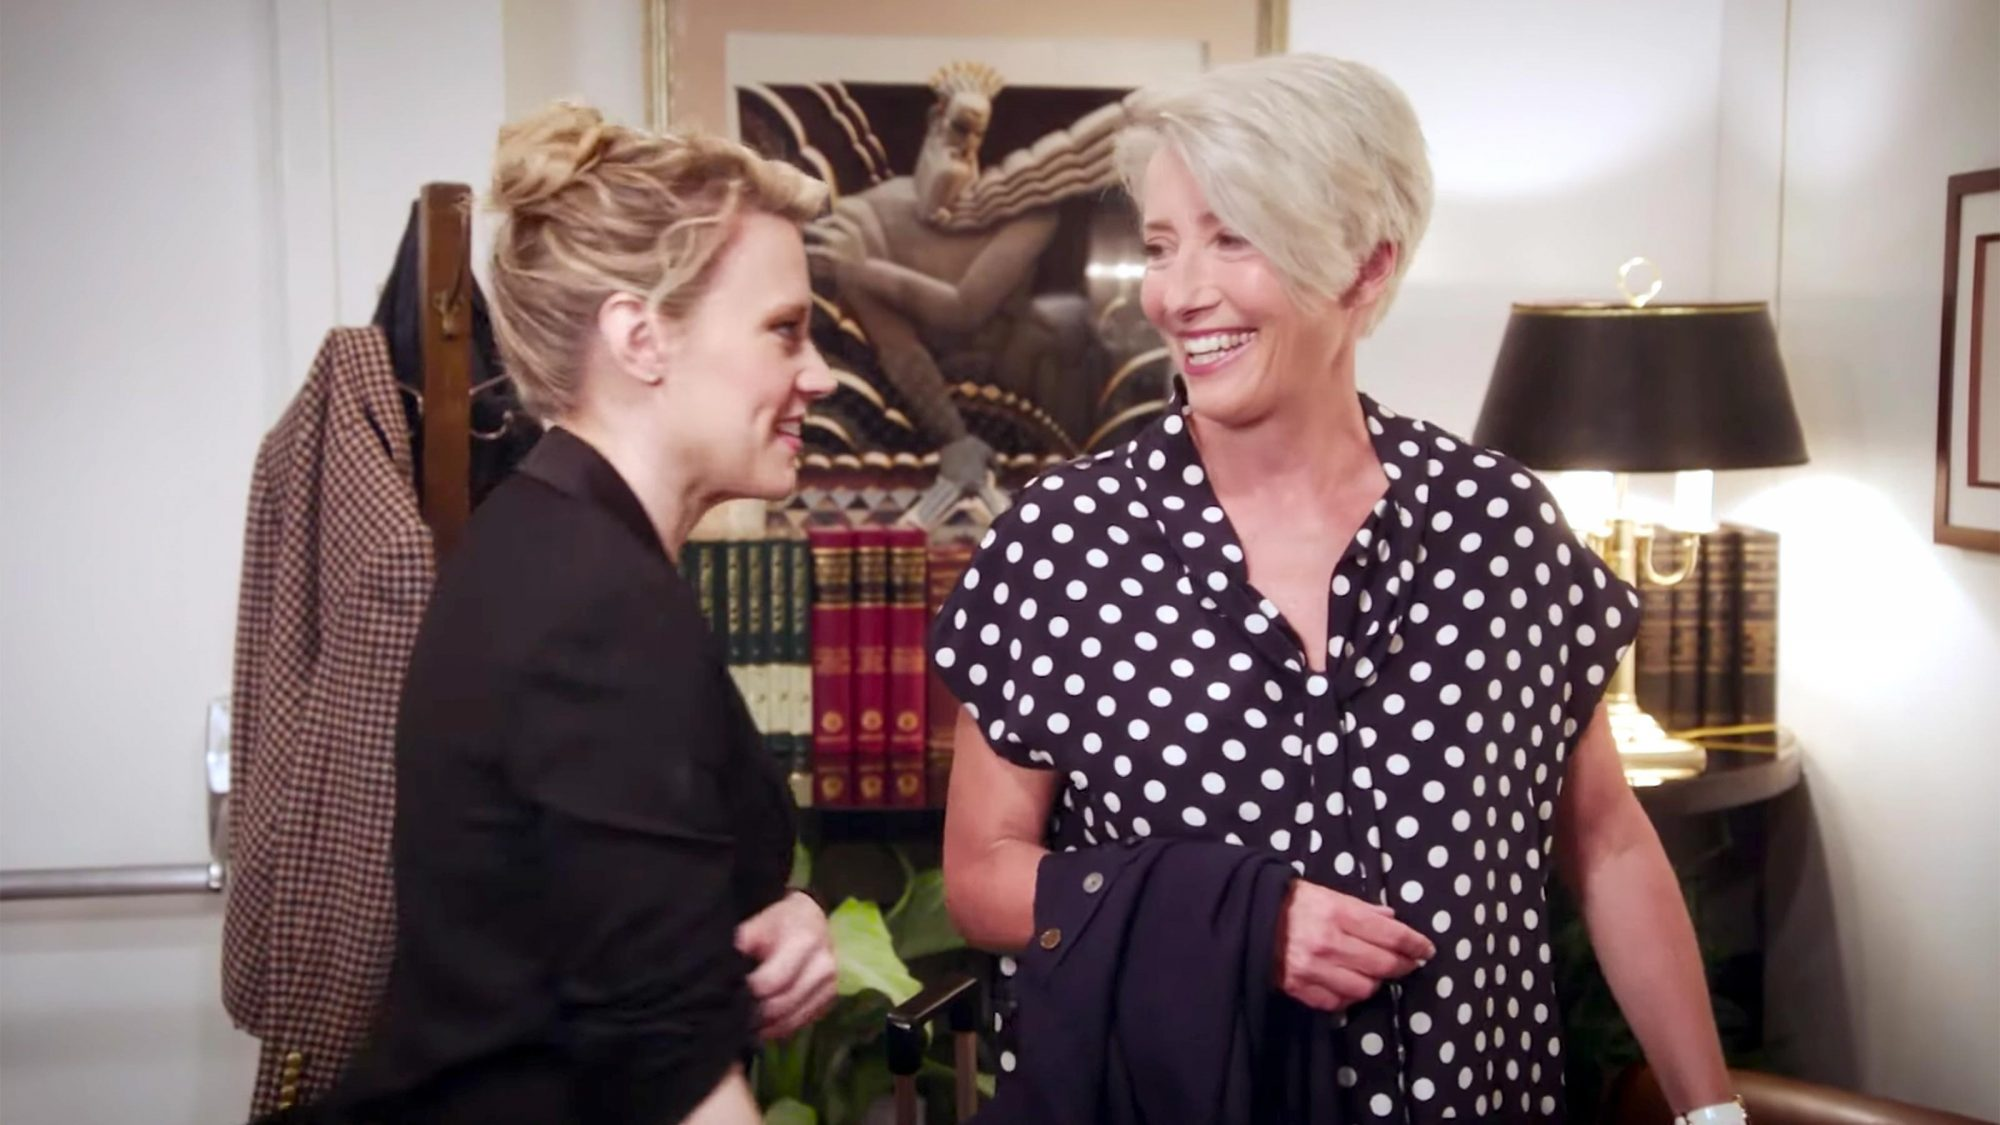 Saturday Night Live - Emma Thompson Gets an SNL Tour from Kate McKinnon (screen grab) https://www.youtube.com/watch?v=YH8oJEHfi8k CR: NBC Saturday Night Live